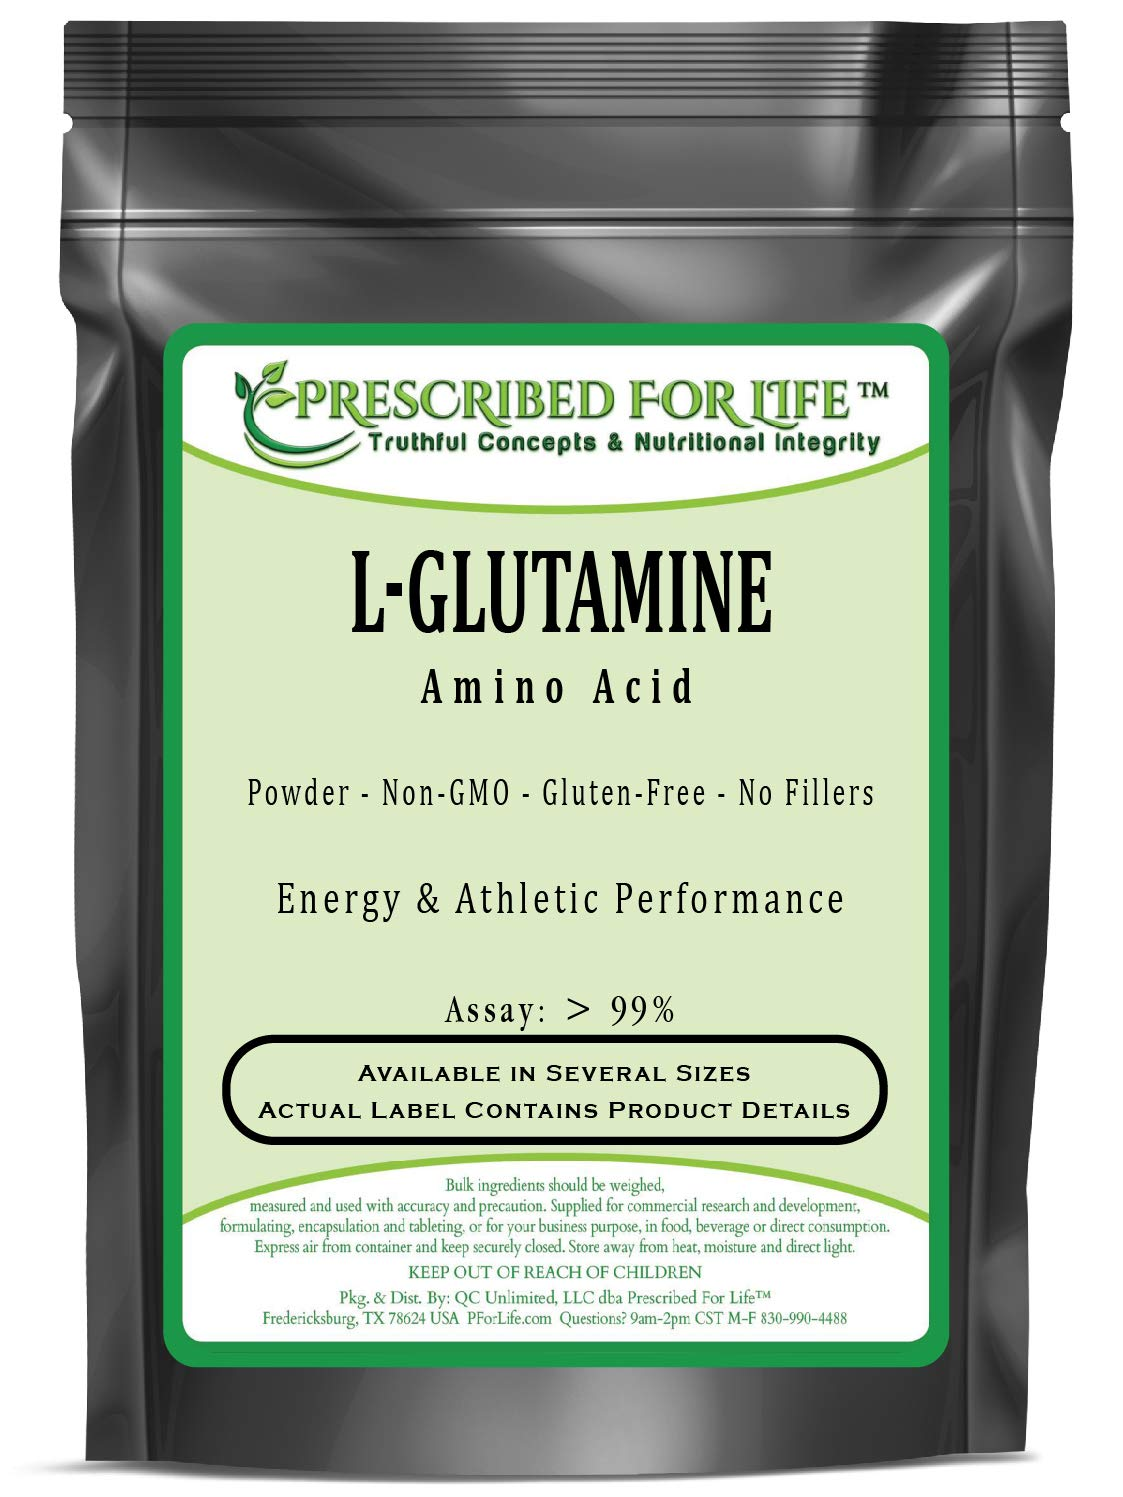 Glutamine (L) - L-Glutamine Amino Acid Powder (Assay: > 99%), 2 kg